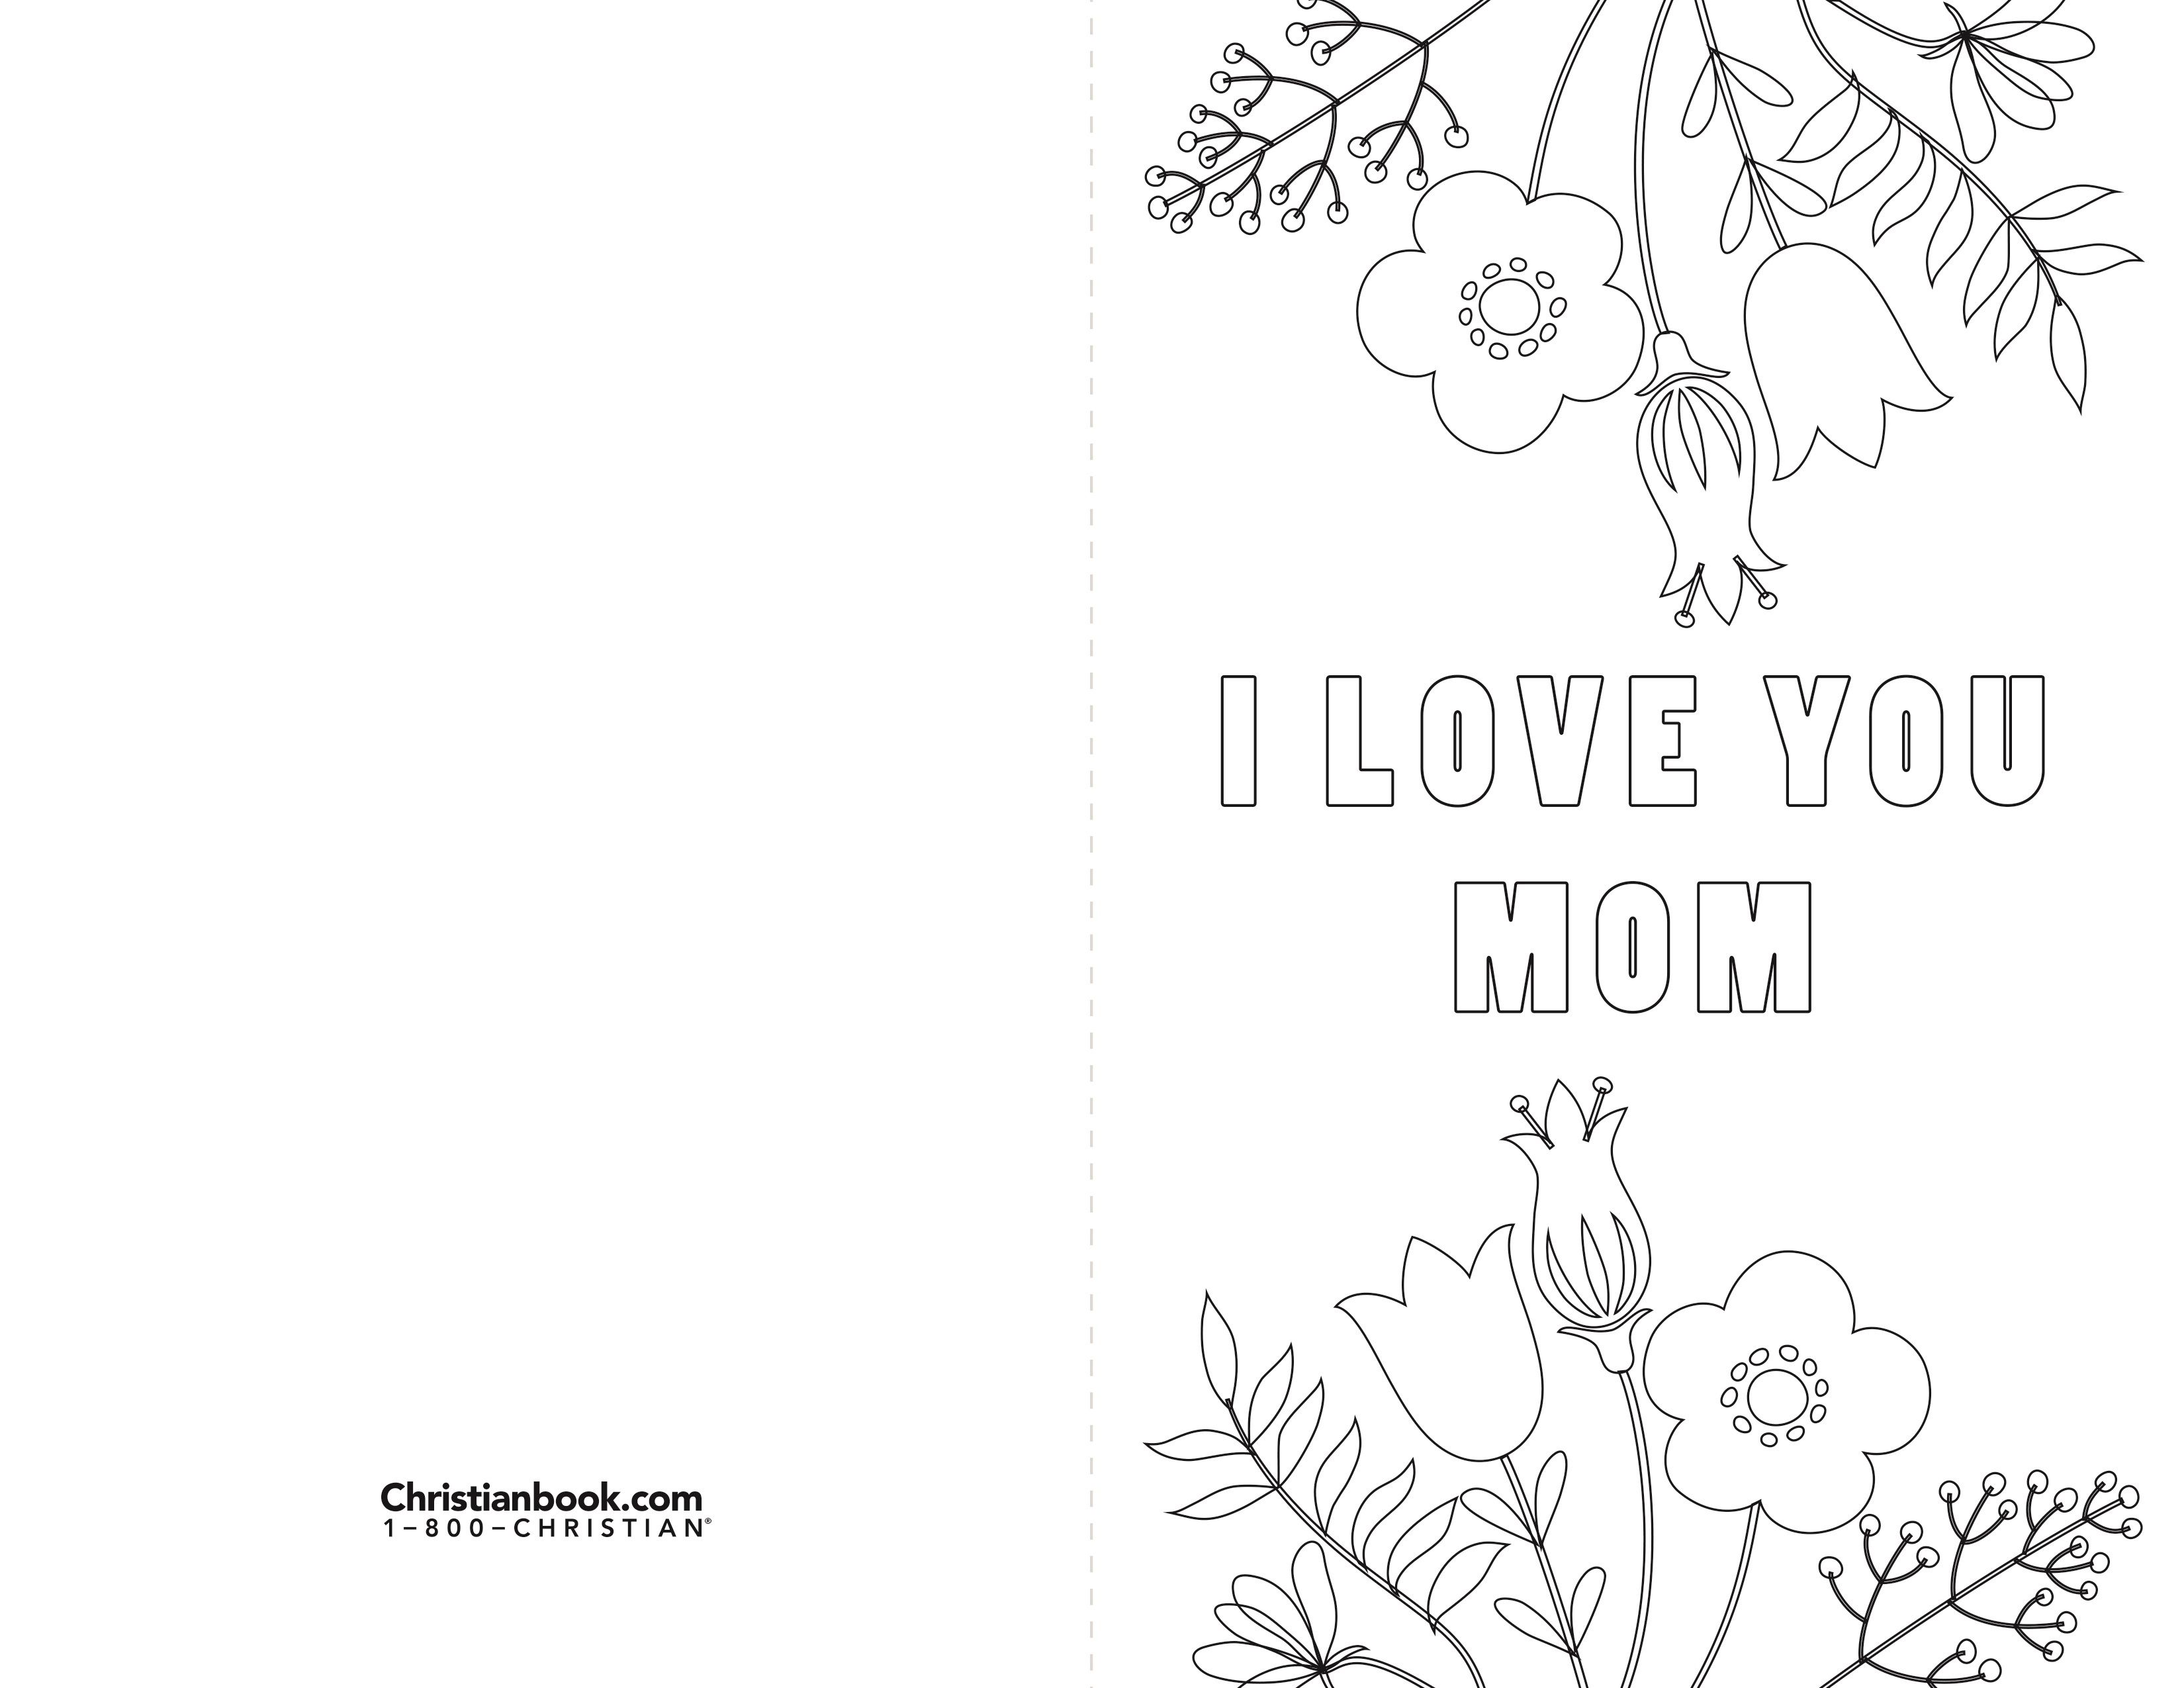 Free coloring page card for you to print out u share for motherus